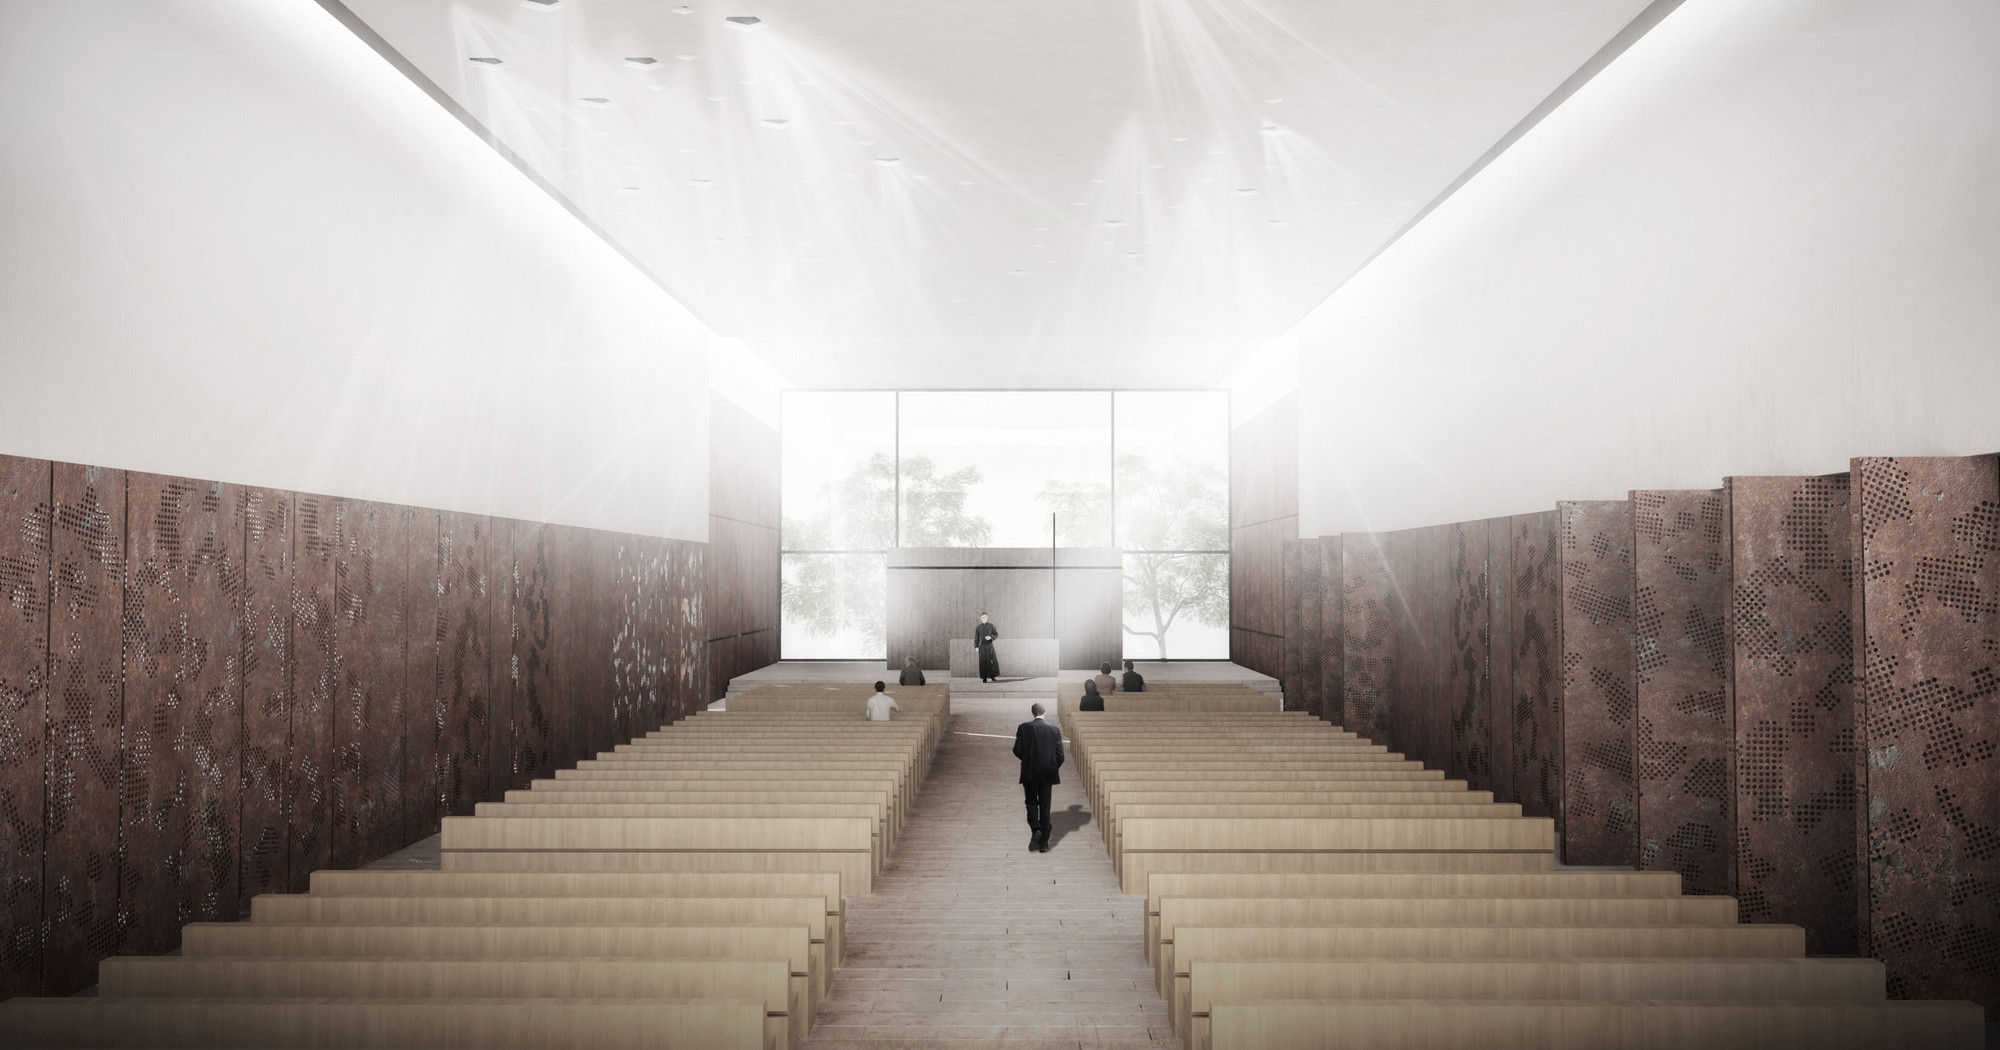 Nave central. Image Courtesy of Taller de arquitectura Singular